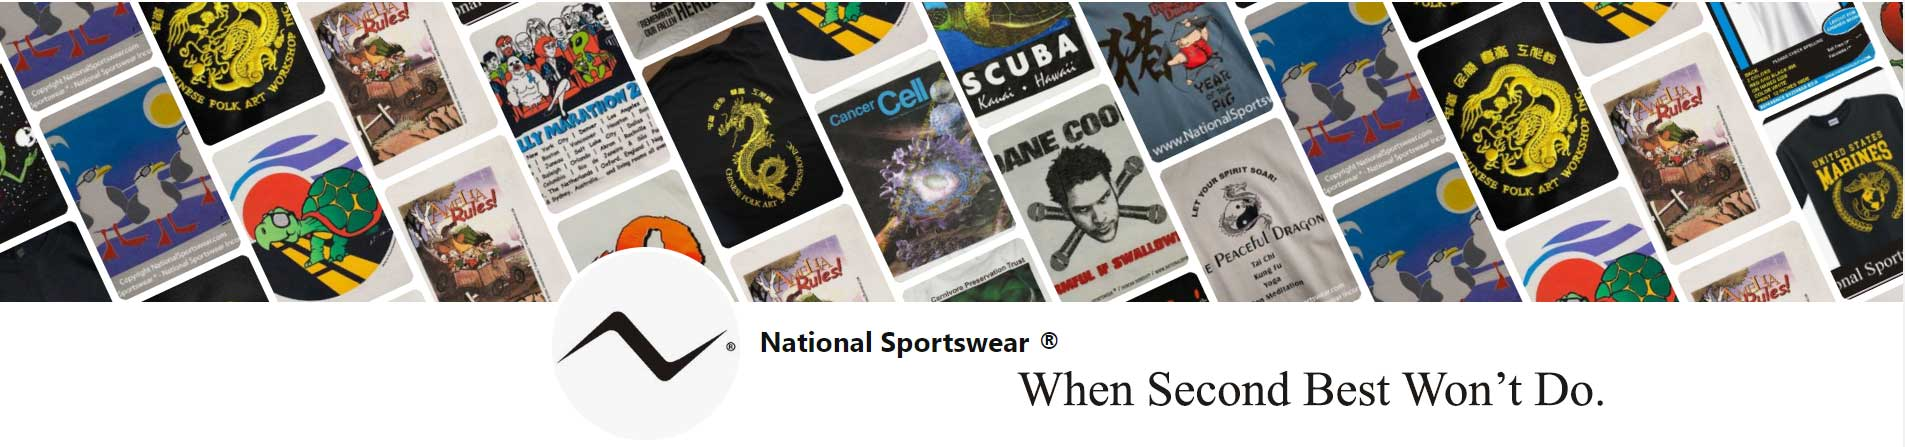 National Sportswear kiwi school